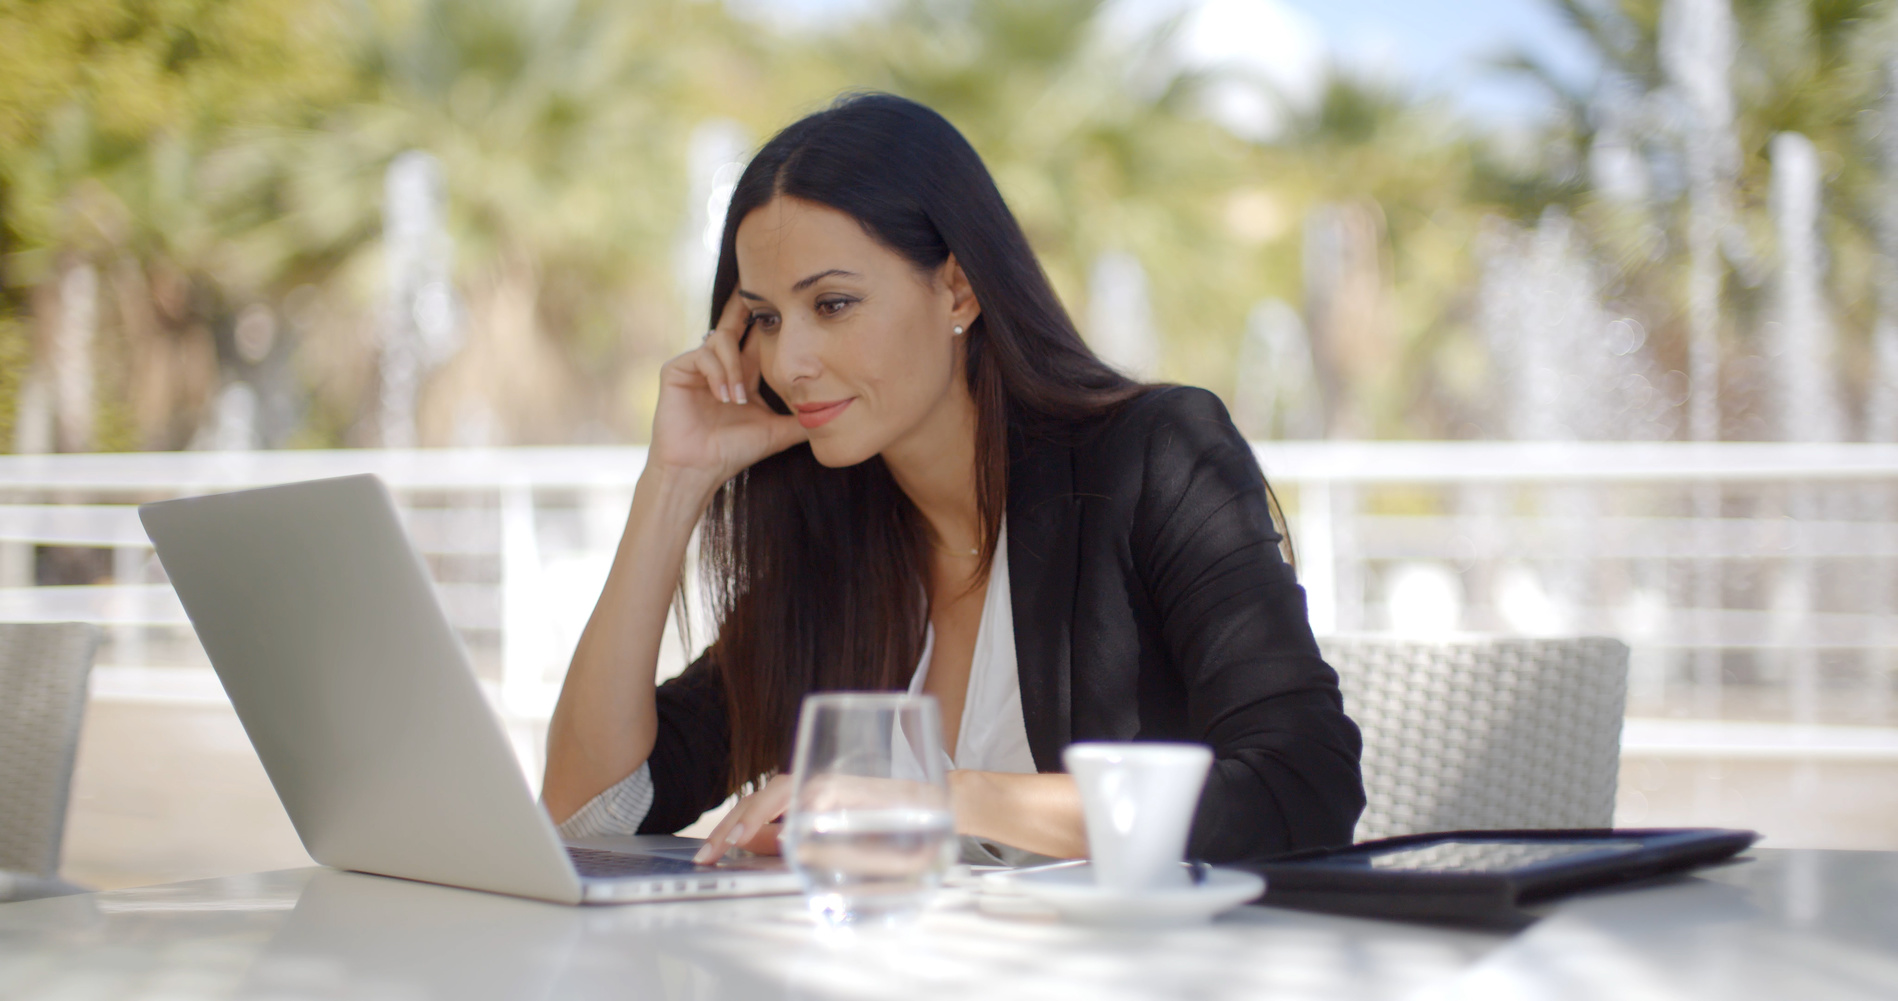 Pretty stylish woman using her laptop computer as she sits at a restaurant table enjoying coffee reading information on the screen with a serious expression